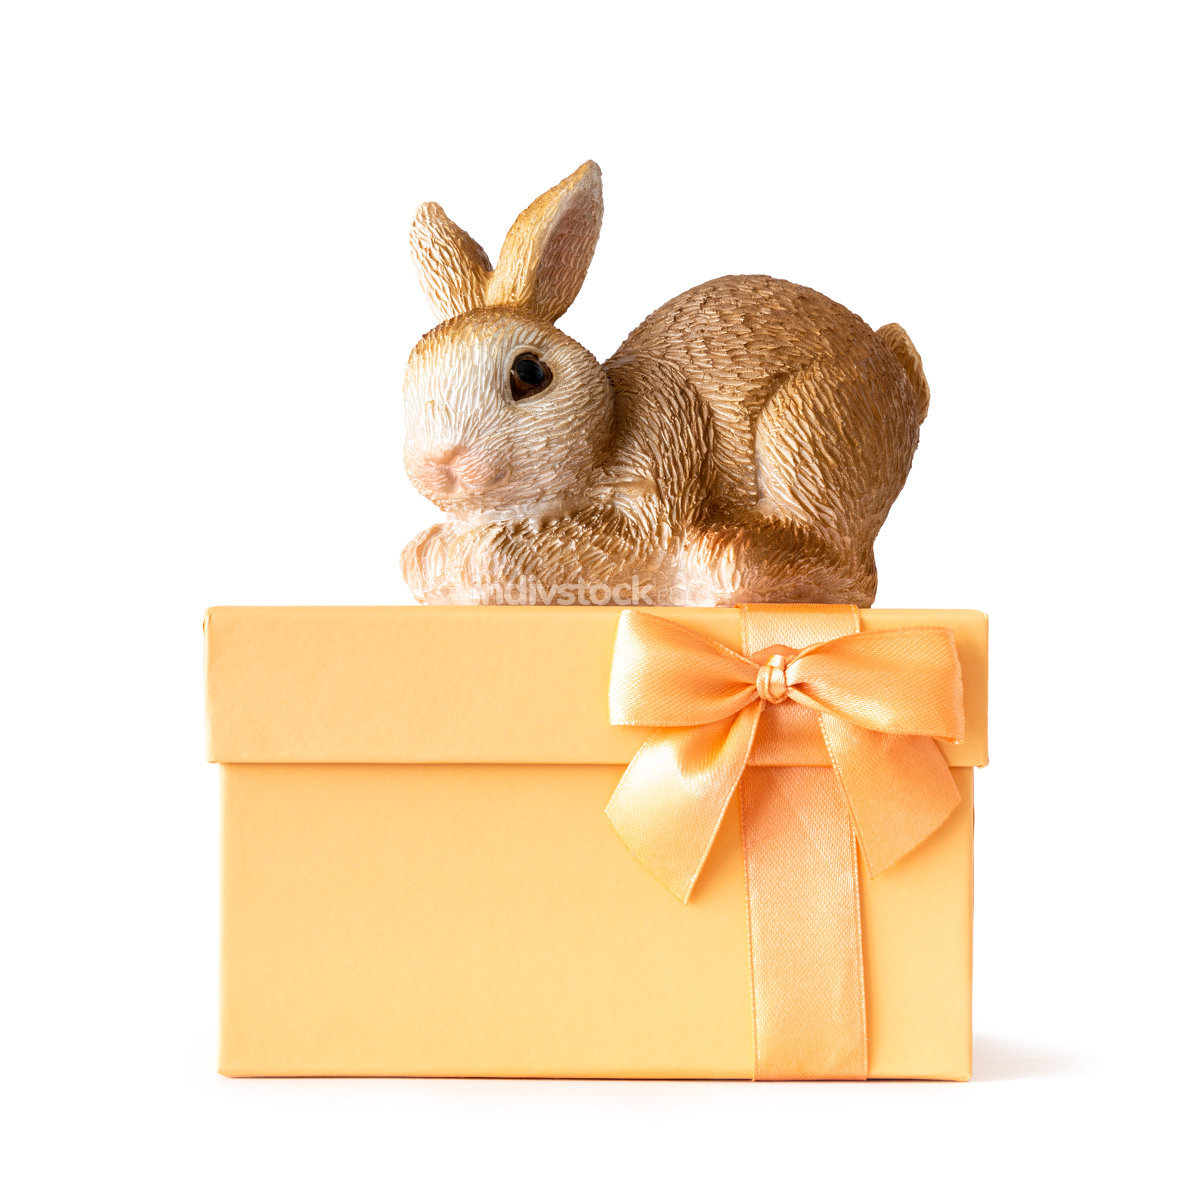 easter bunny on an orange gift box